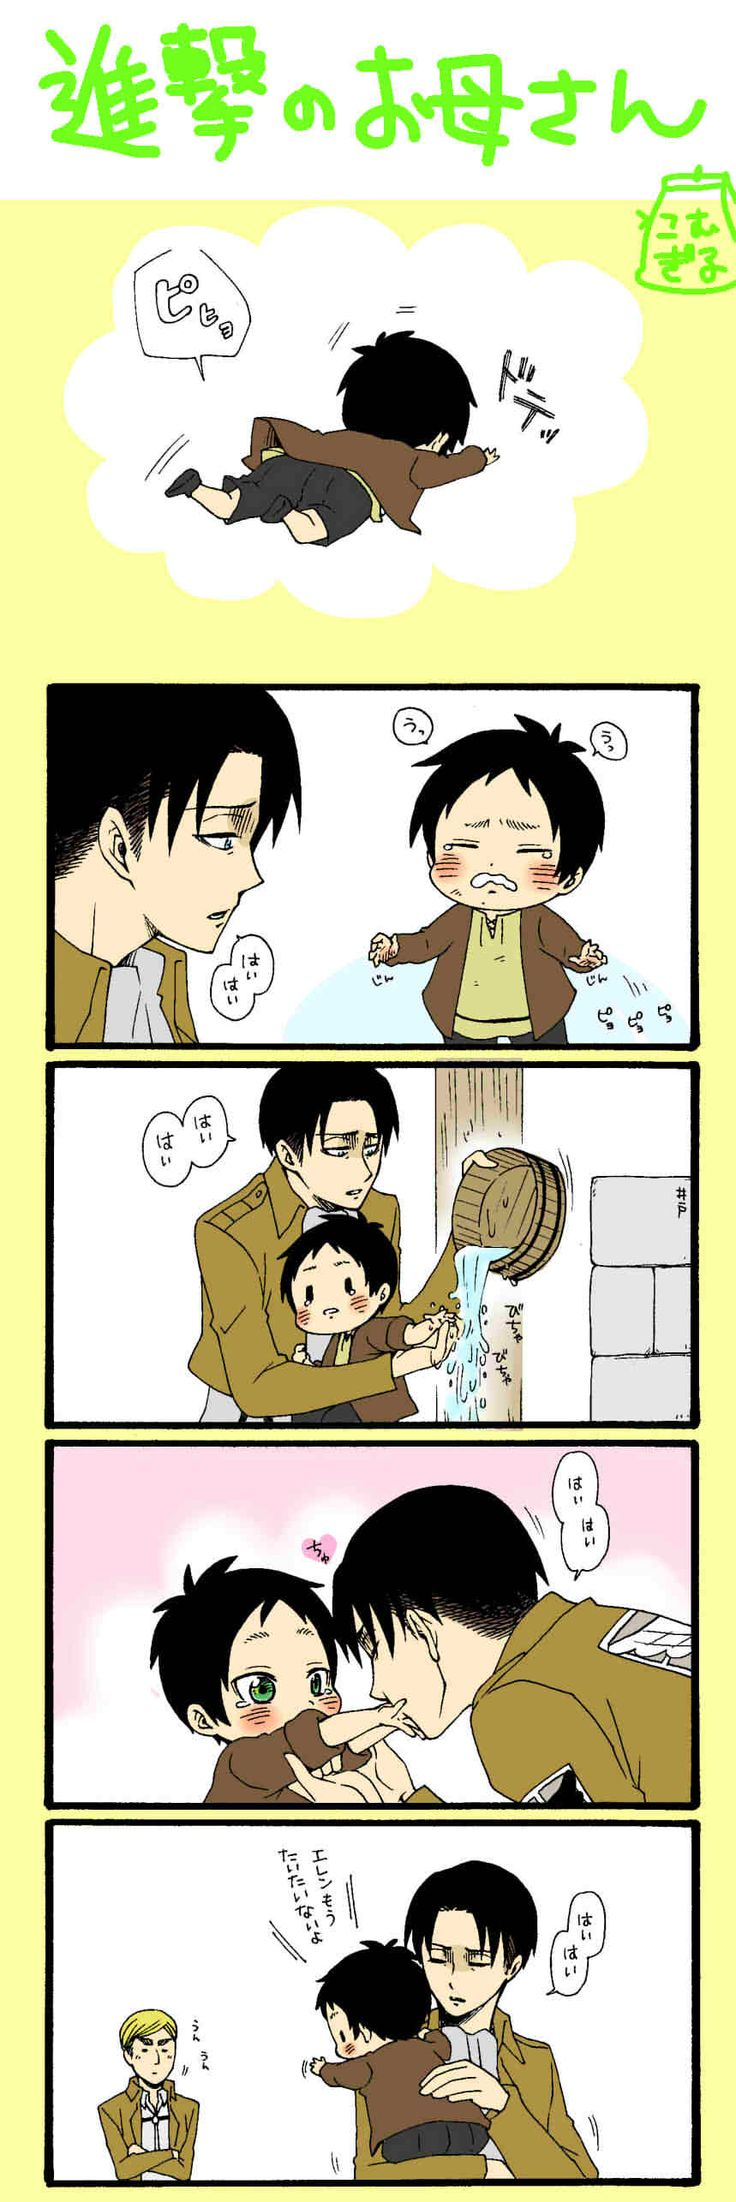 PLATONIC ereri moments, goes to my eruri board because I imagine Erwin and Eren fighting for Levi's attention. Eren always wins with puppy eyes, but at night Erwin swoops in and steals all the glory... If you know what I mean ;^)